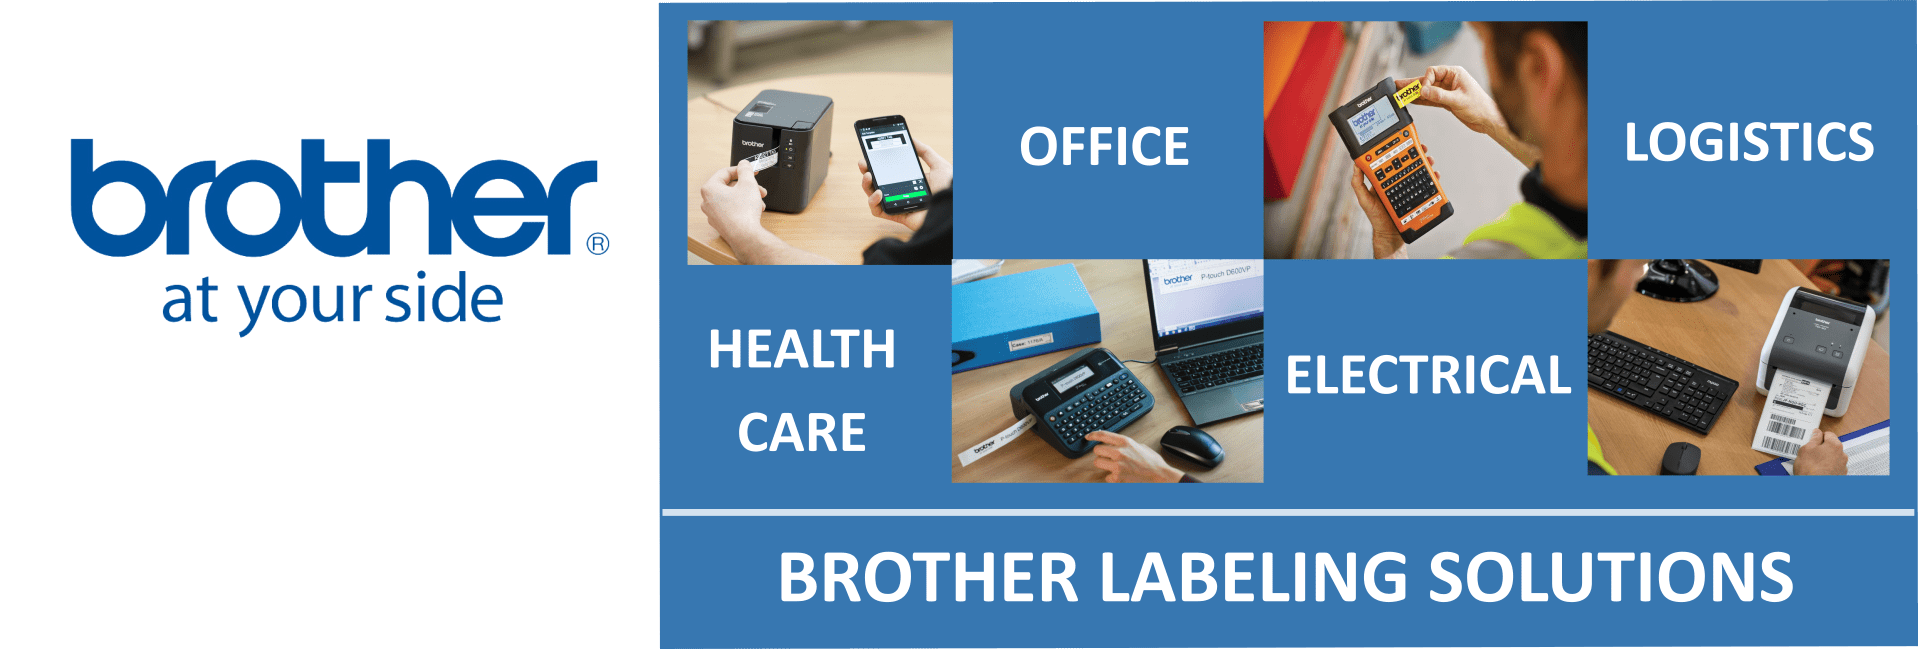 Brother Labeling Solution in Dubai, UAE